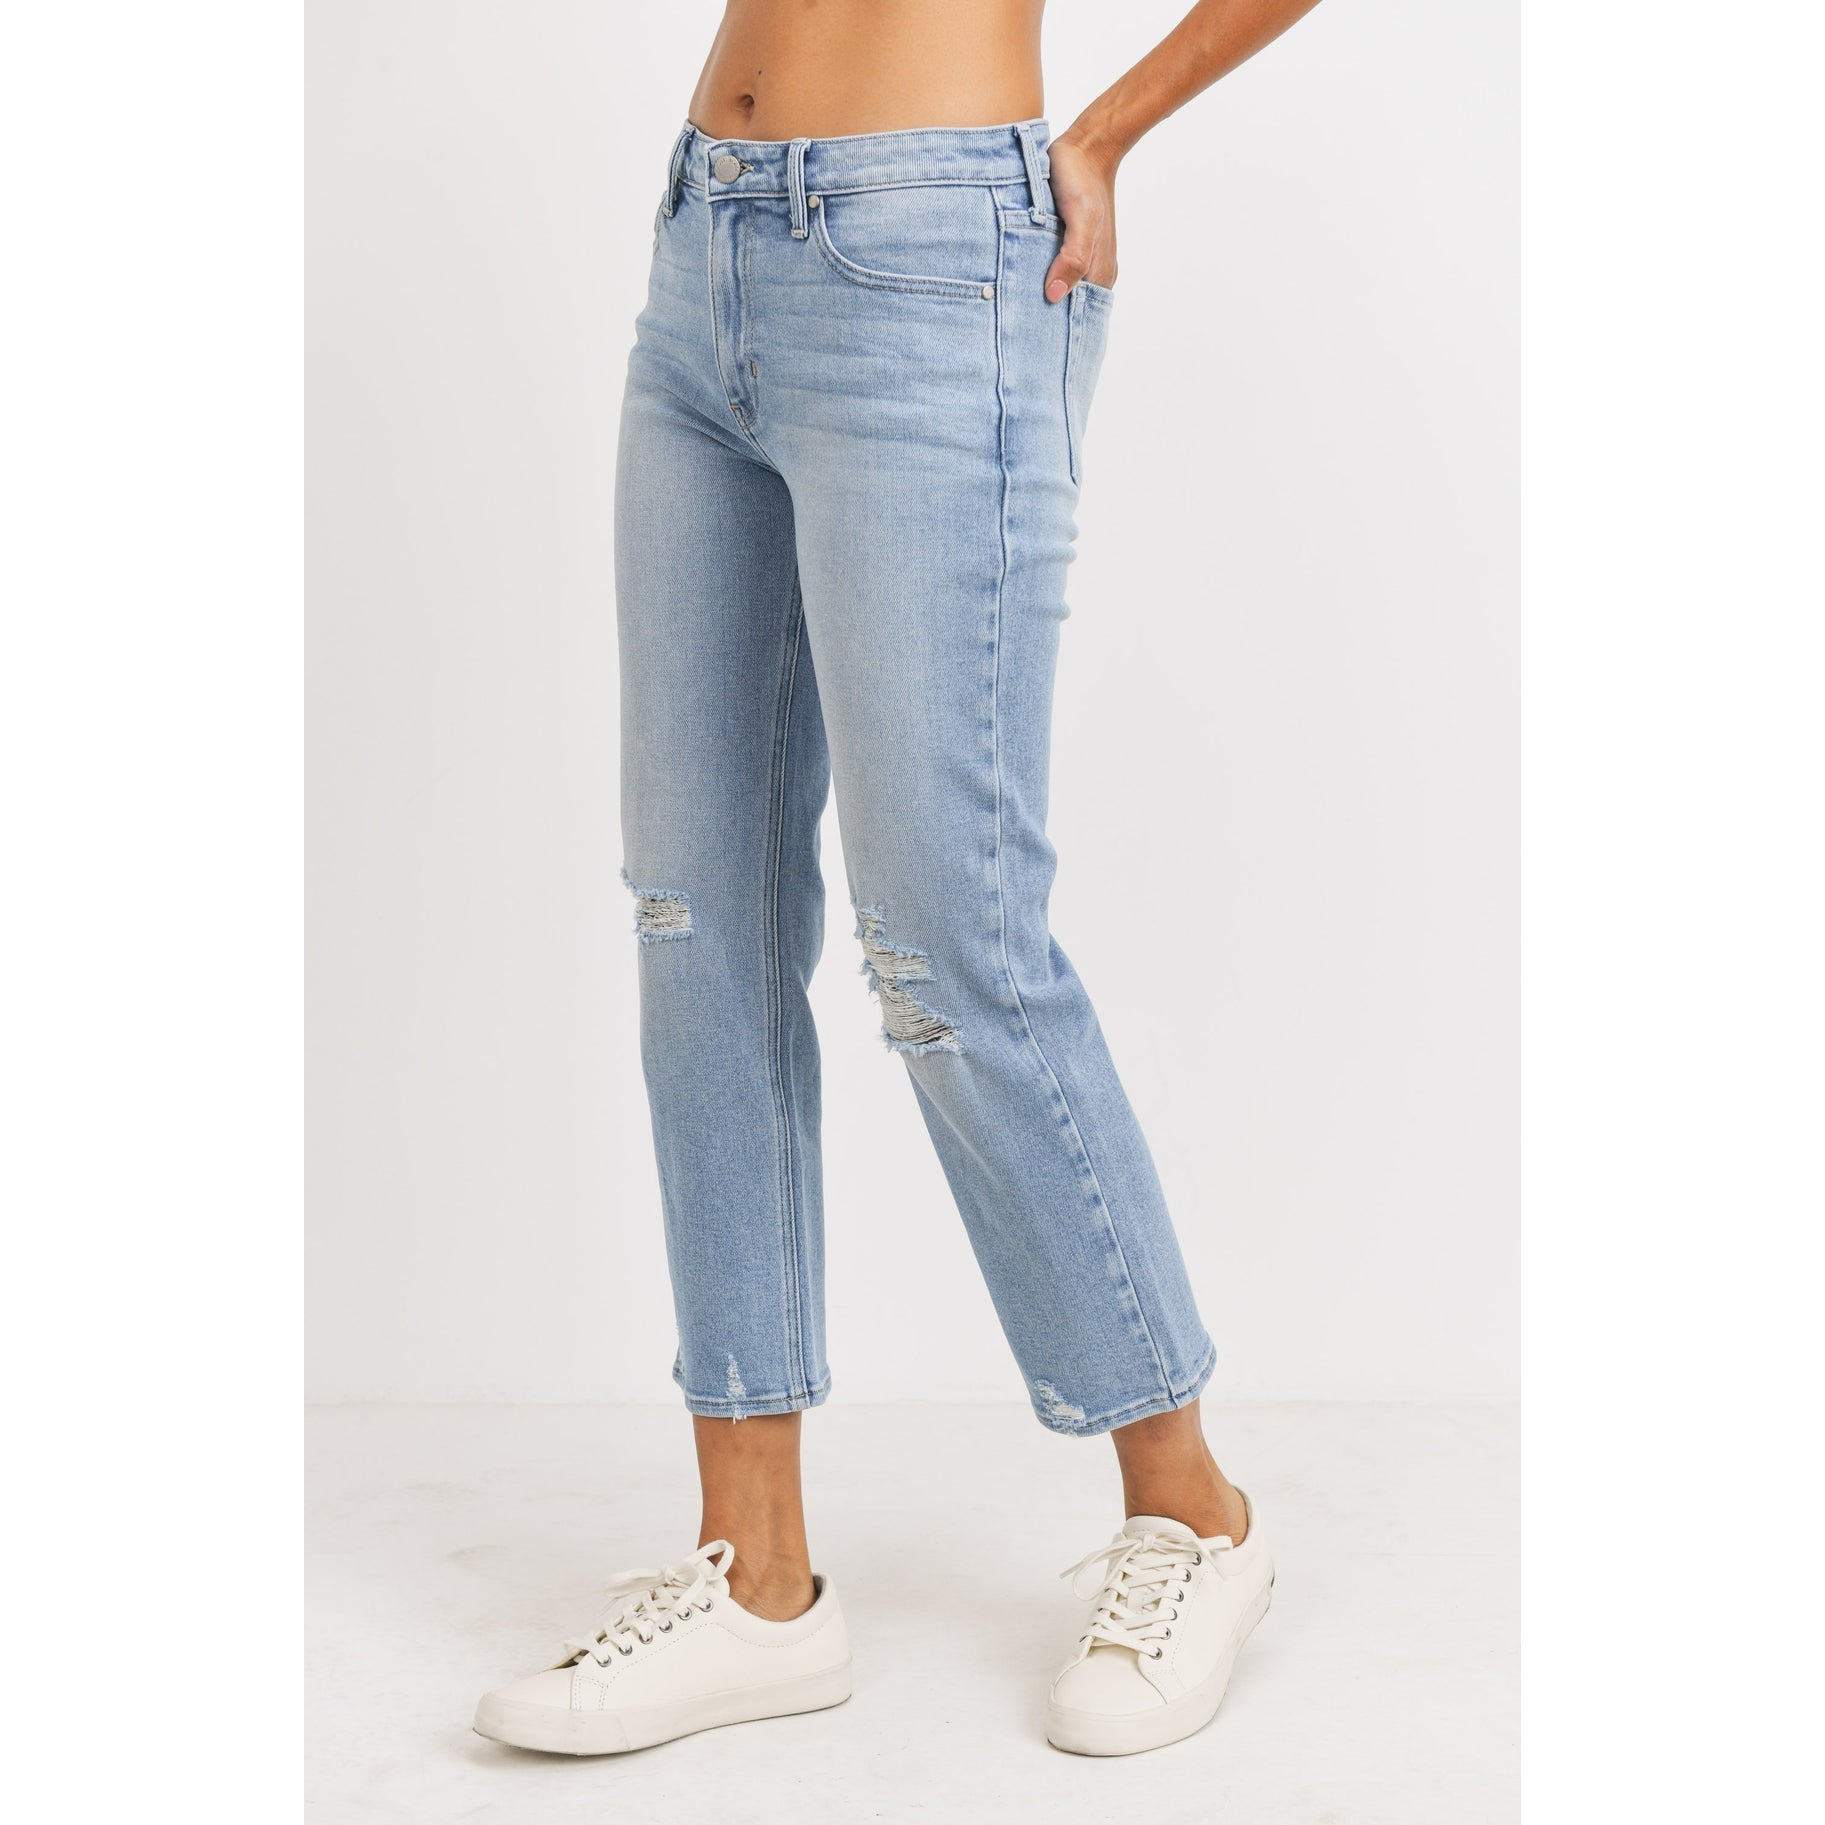 Side view of model wearing the light wash straight jeans. There is distressing at the knees and parts of the hem. Her hand is in the back pocket and she is wearing white sneakers